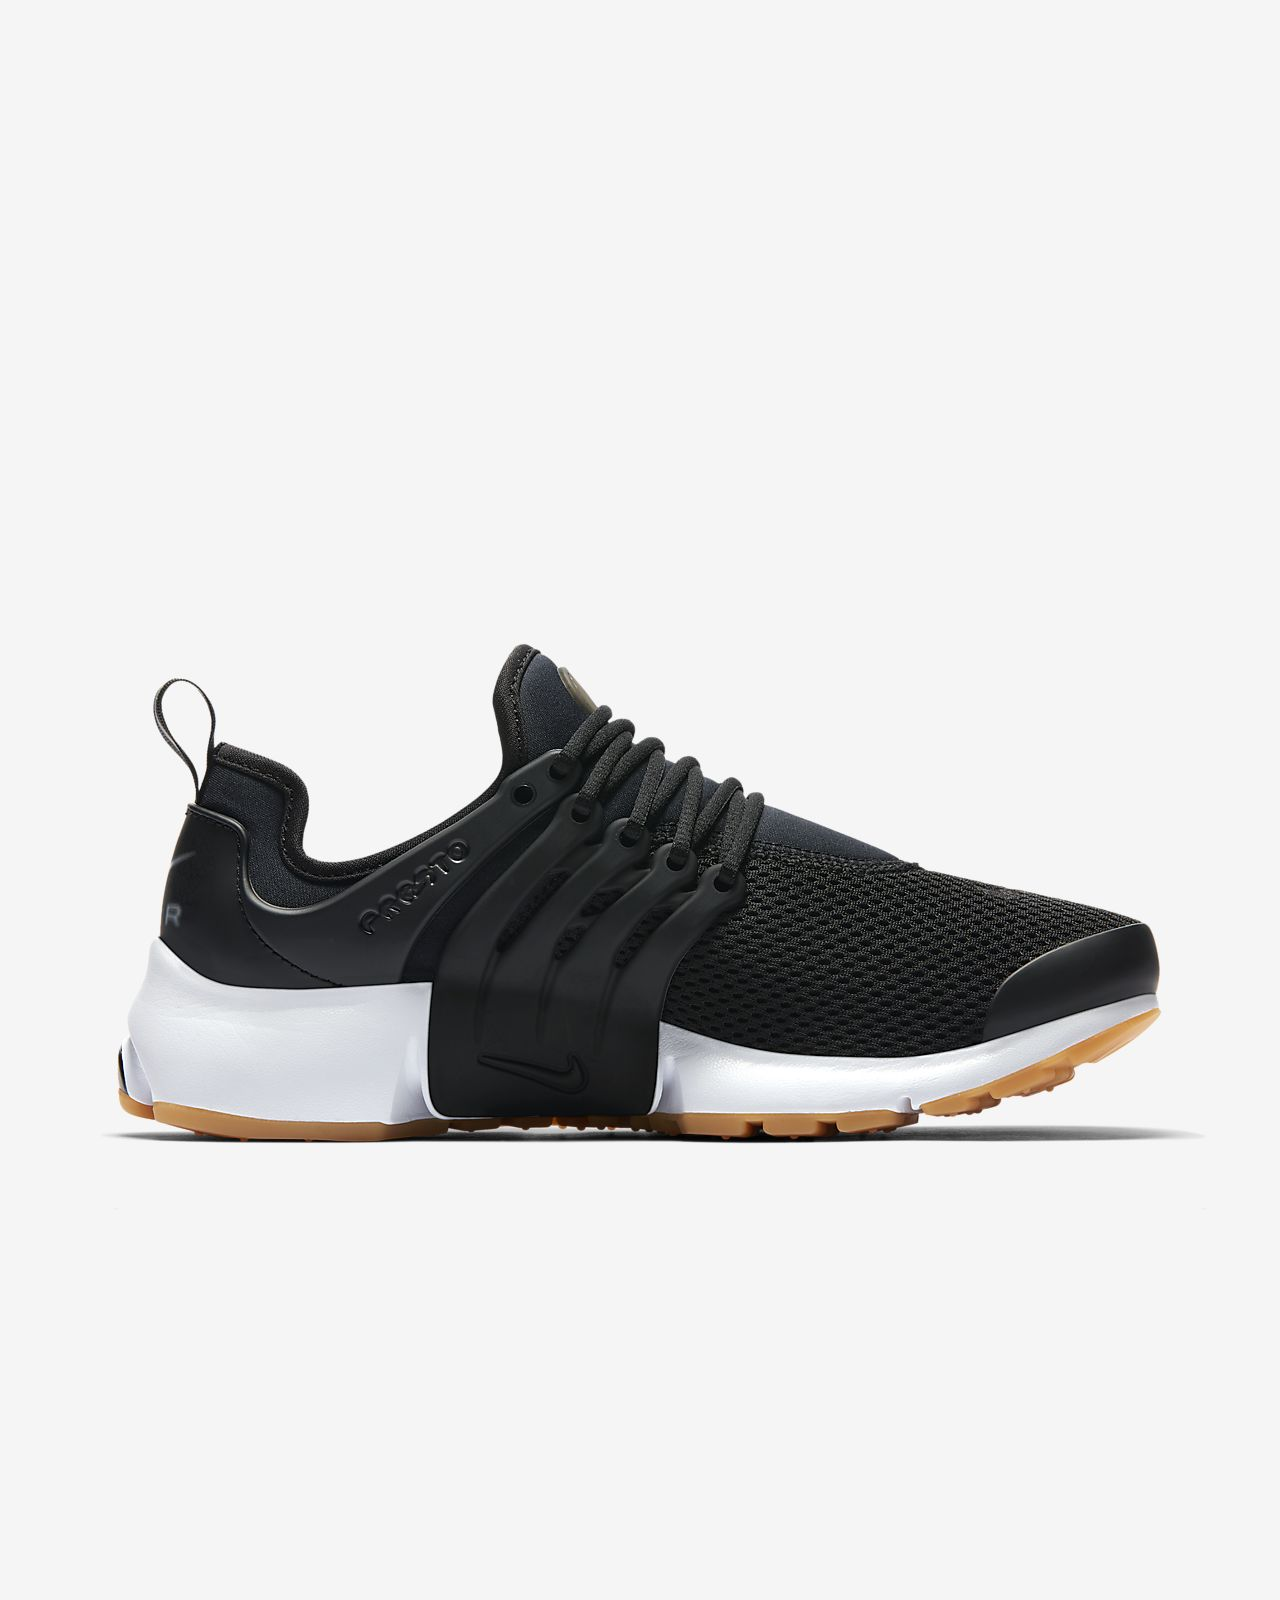 premium selection d2e8d b484d Nike Air Presto Women's Shoe